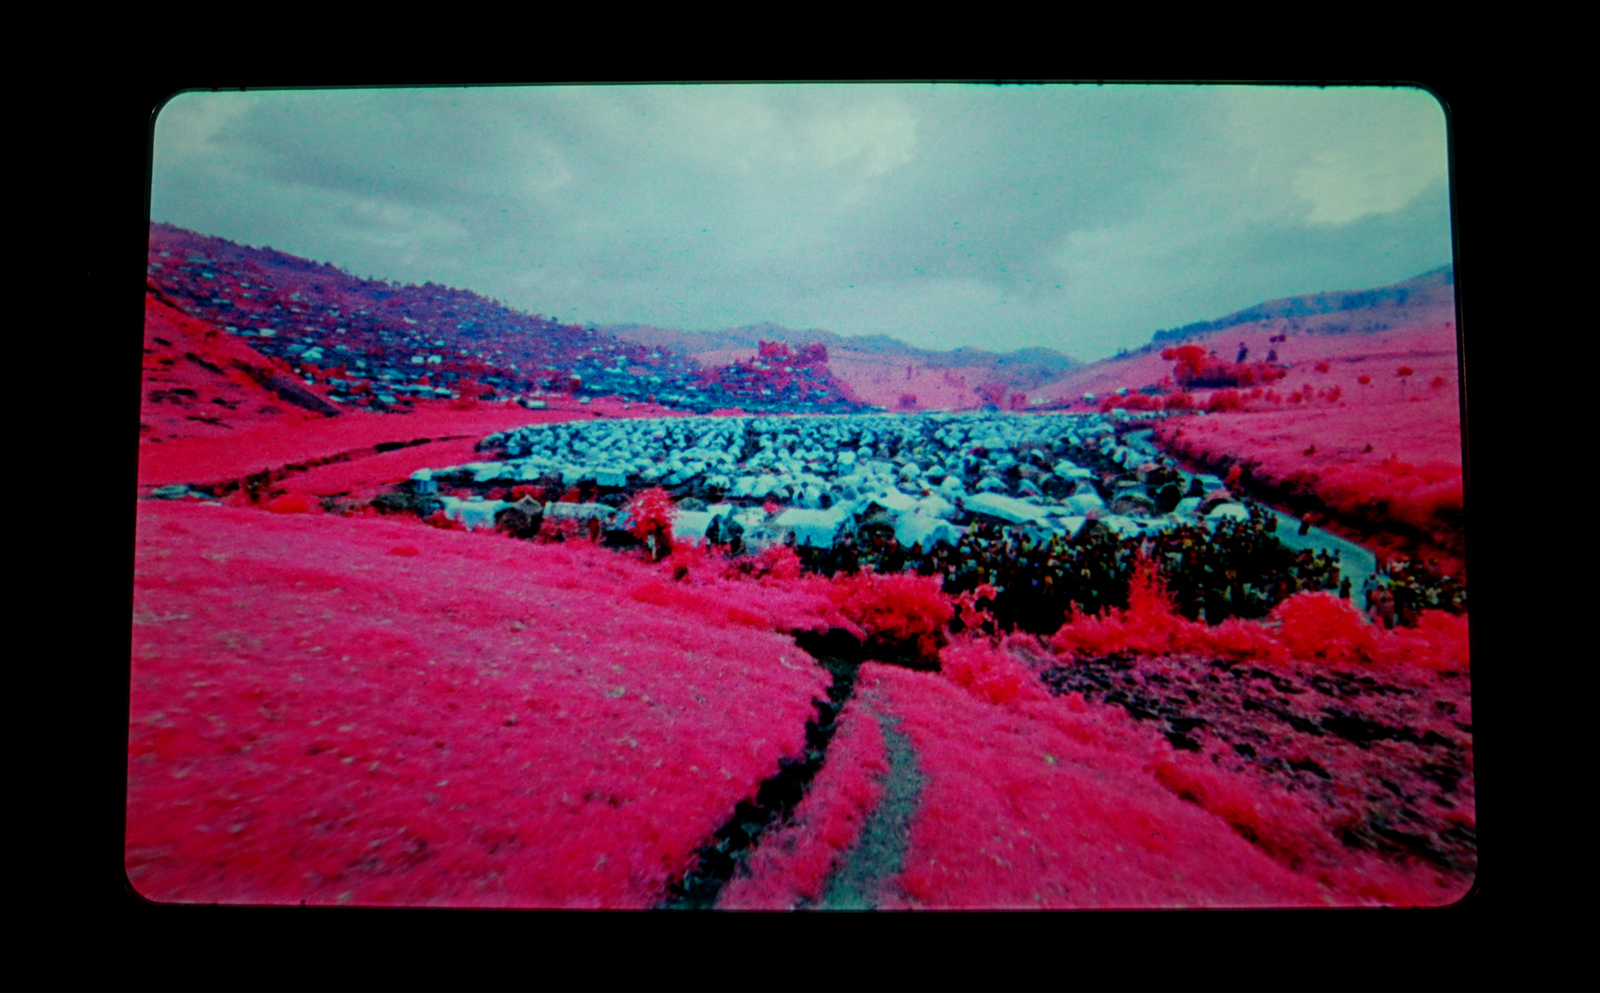 The Enclave, 2012-2015, Richard Mosse